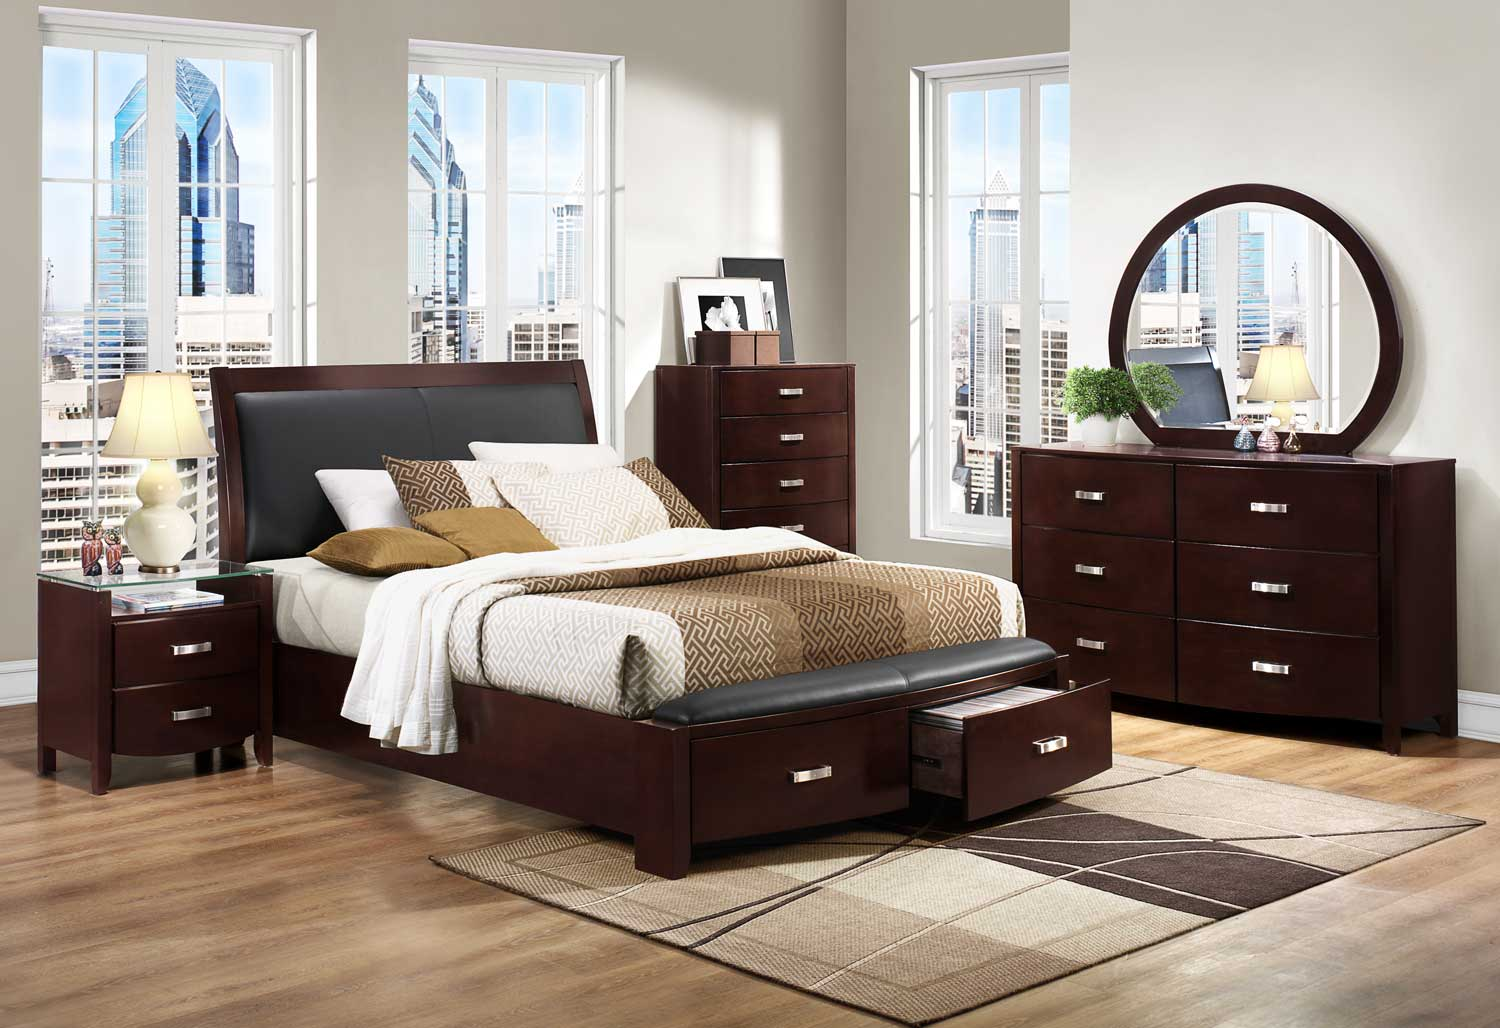 Homelegance Lyric Platform Bedroom Set Dark Espresso